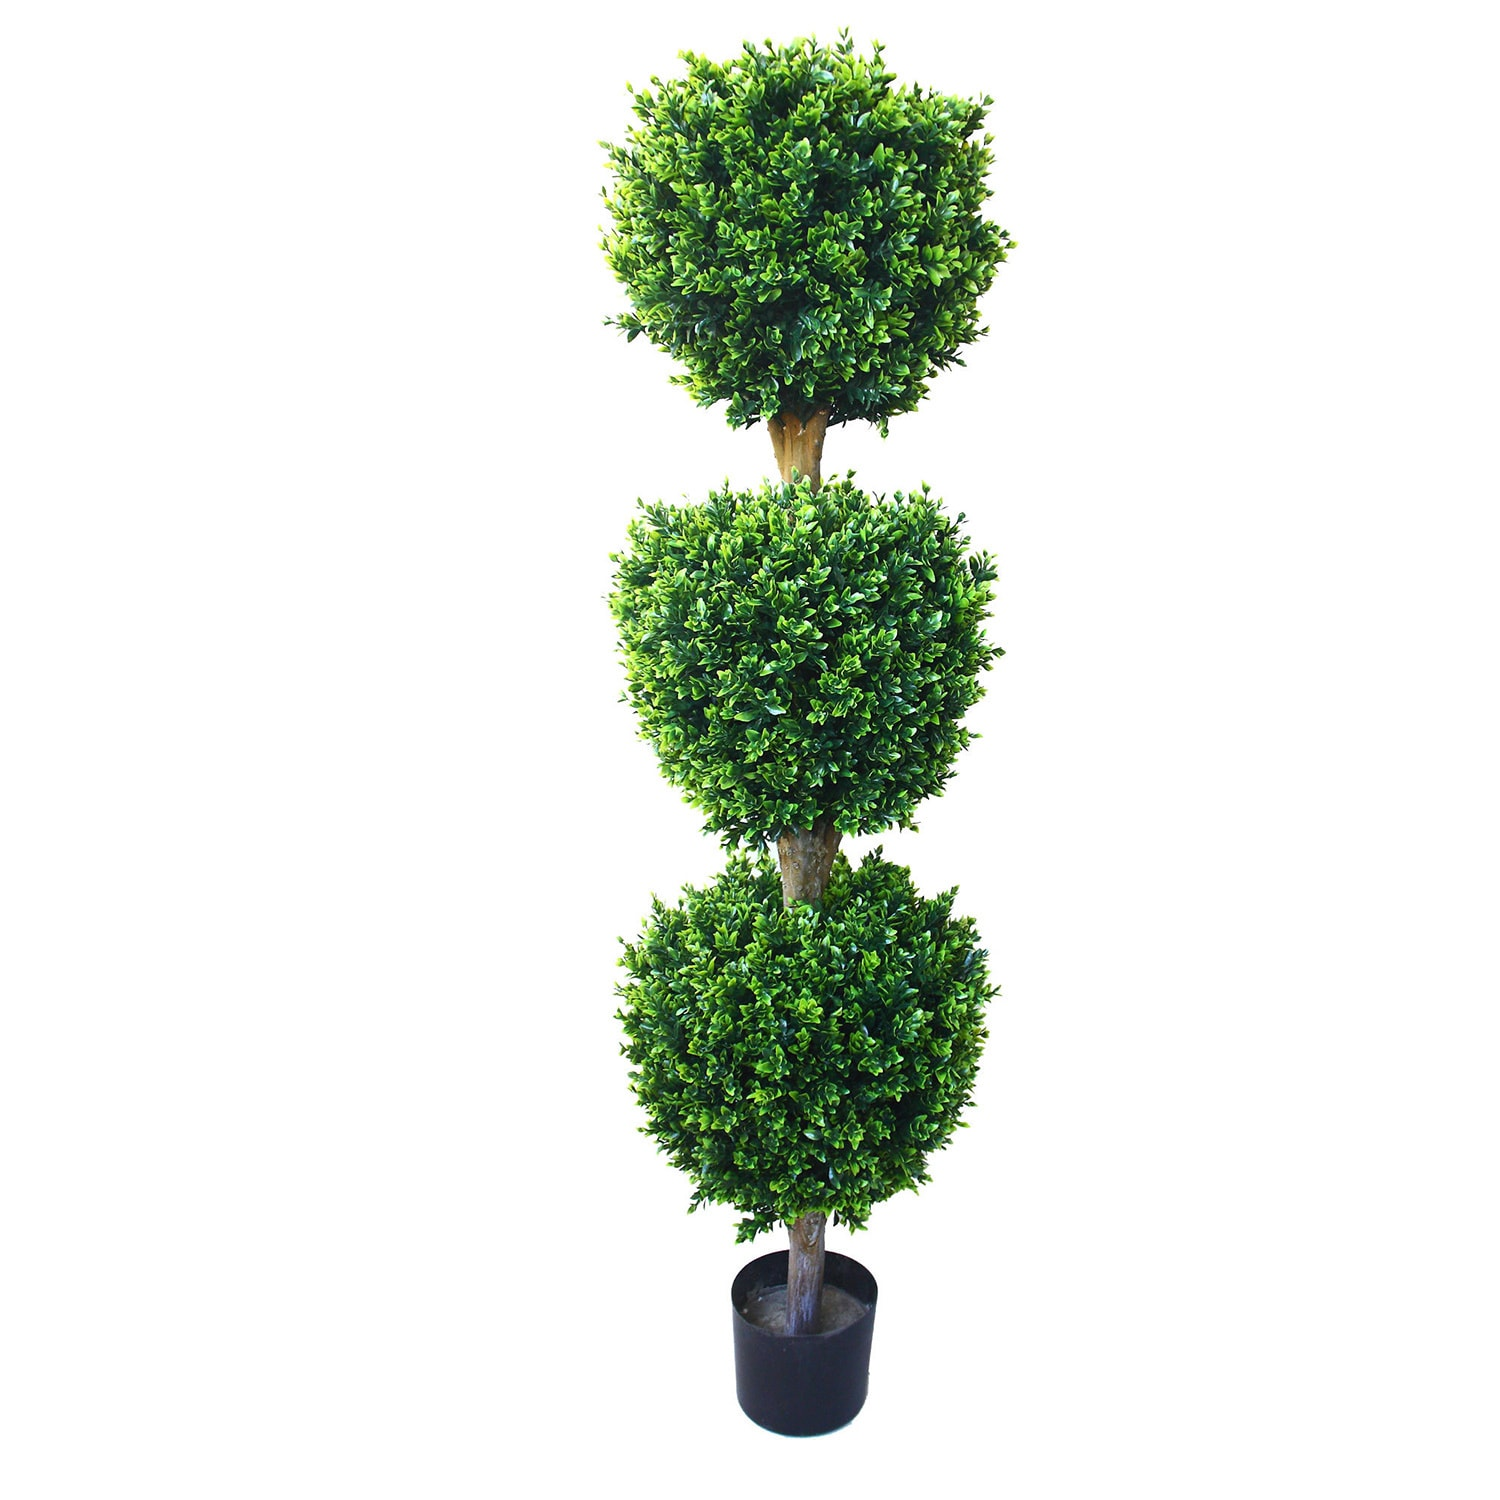 Shop 5 Foot Artificial Hedyotis Tree Large Faux Potted Topiary